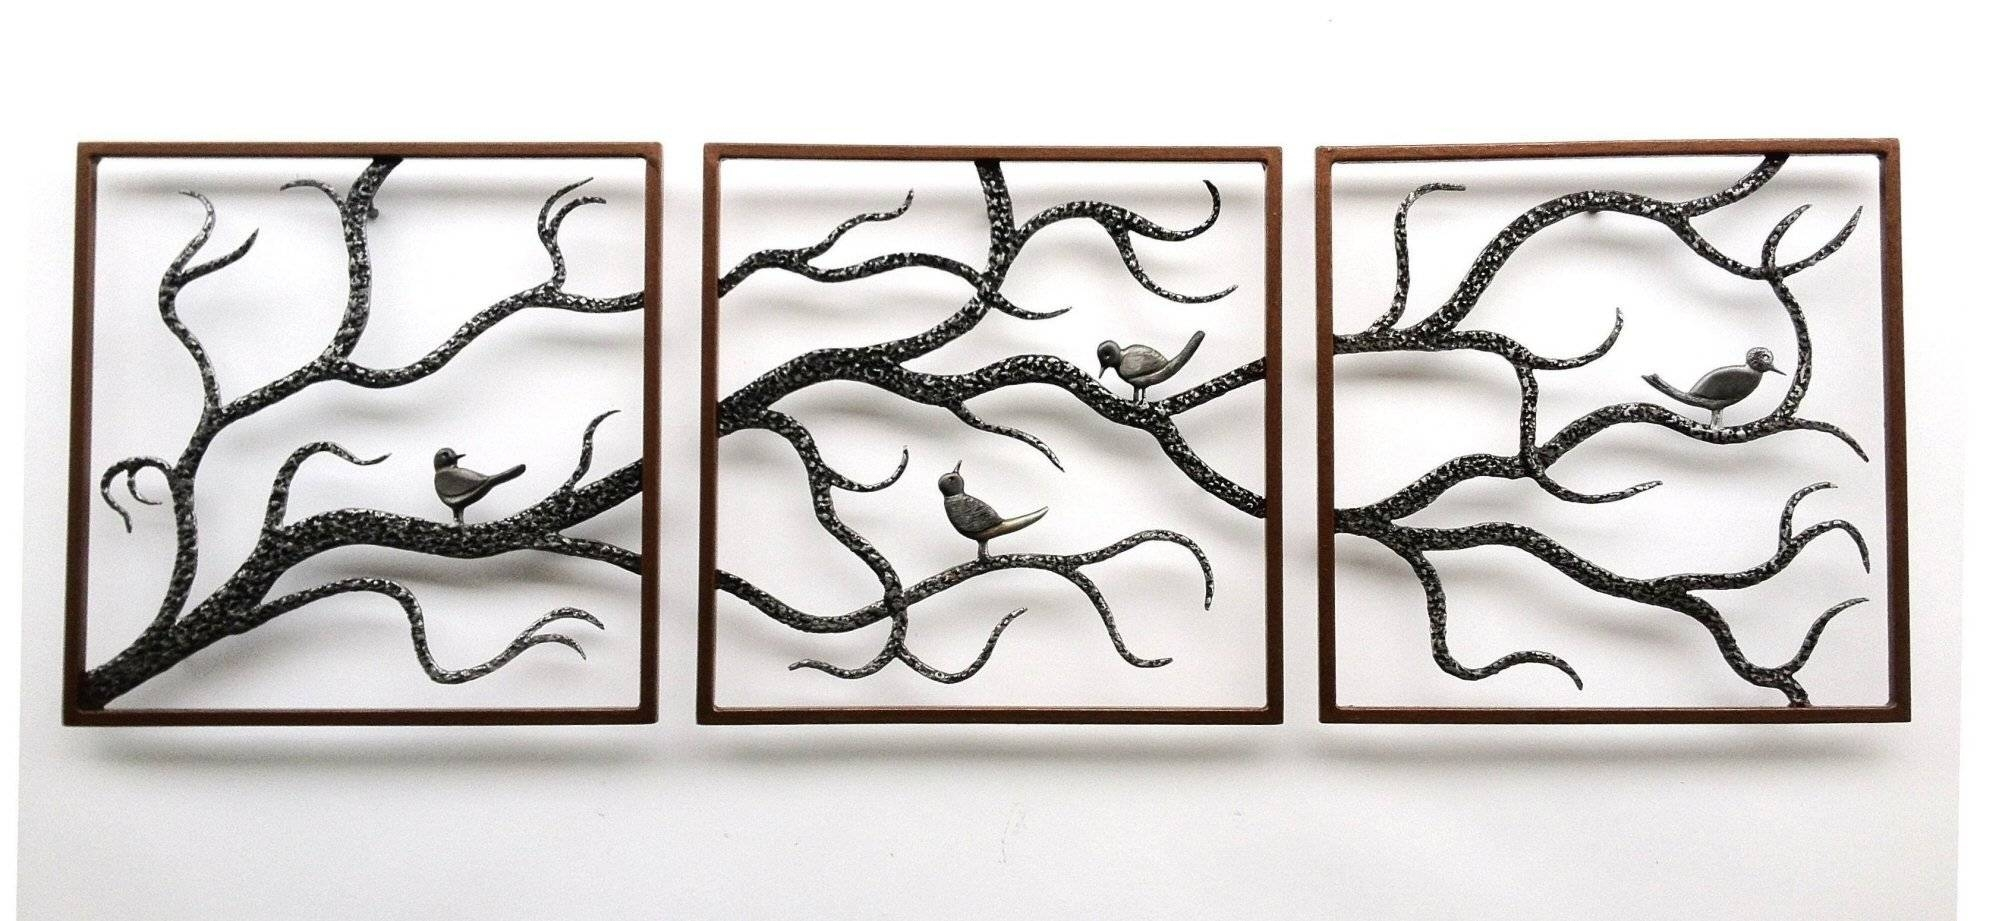 Wall Design: Stainless Steel Wall Art Images (View 20 of 20)